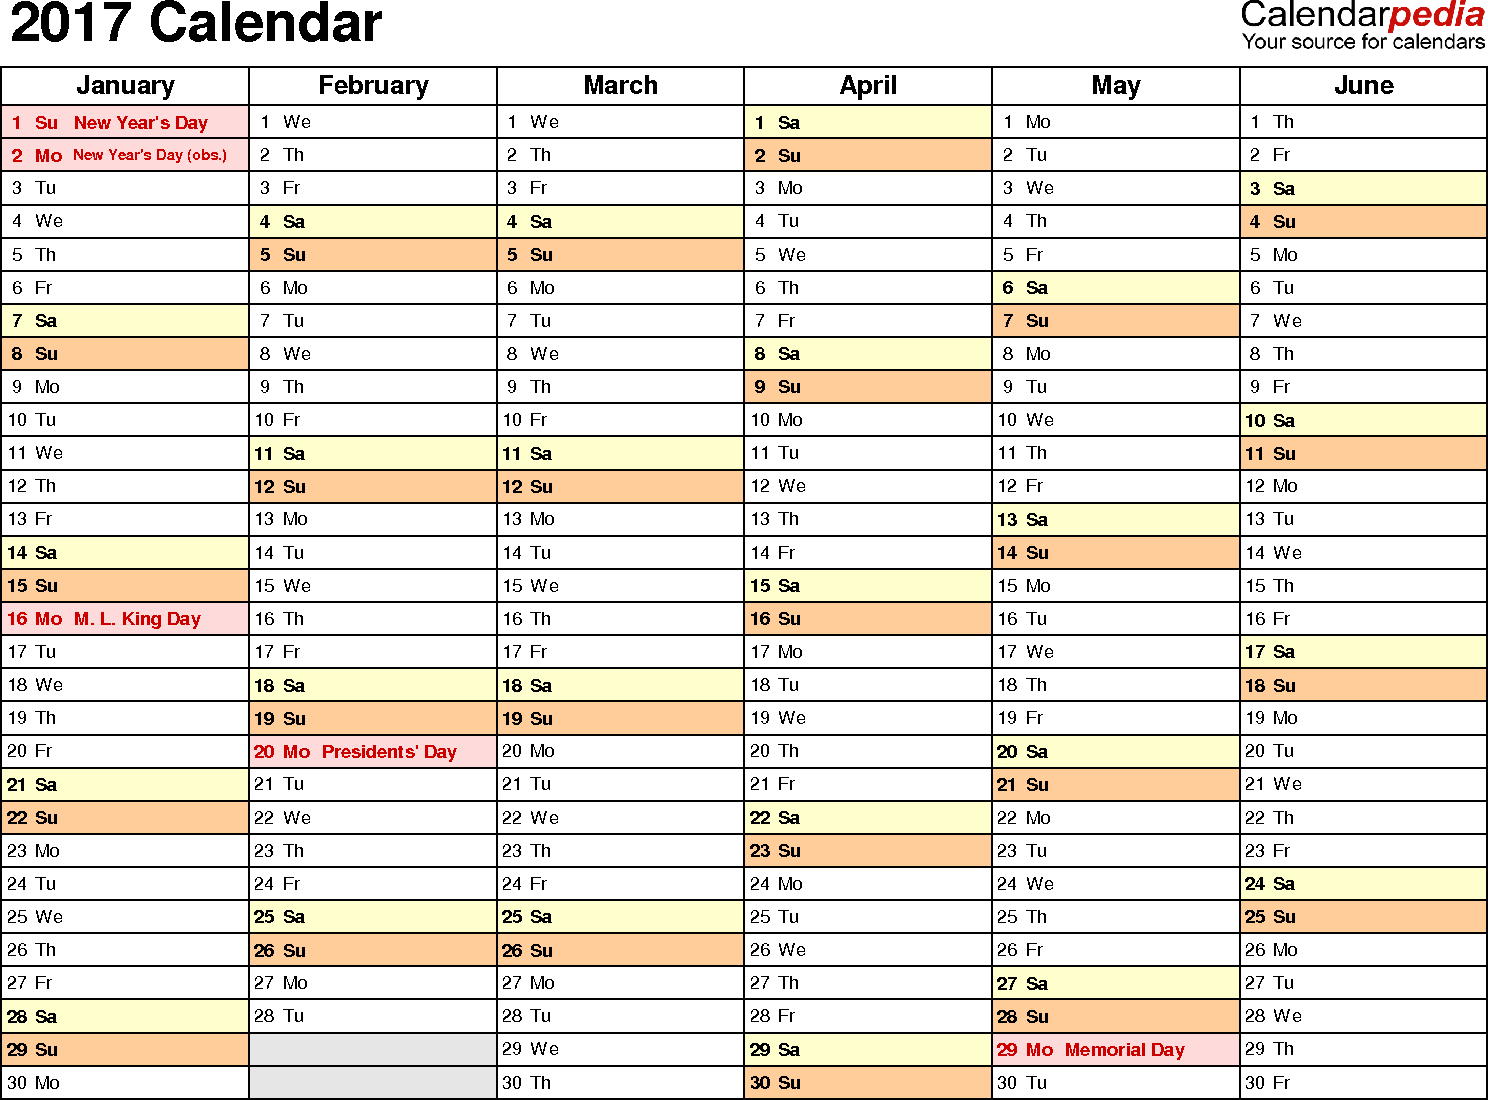 Ediblewildsus  Pleasing  Calendar  Download  Free Printable Excel Templates Xls With Exciting Template   Calendar For Excel Months Horizontally  Pages Landscape Orientation With Enchanting How To Do Histograms In Excel Also Find Cell In Excel In Addition Free Excel Practice Exercises And Convert Pdf To Excel Software As Well As Examples Of Vlookup In Excel Additionally Excel Binomial From Calendarpediacom With Ediblewildsus  Exciting  Calendar  Download  Free Printable Excel Templates Xls With Enchanting Template   Calendar For Excel Months Horizontally  Pages Landscape Orientation And Pleasing How To Do Histograms In Excel Also Find Cell In Excel In Addition Free Excel Practice Exercises From Calendarpediacom